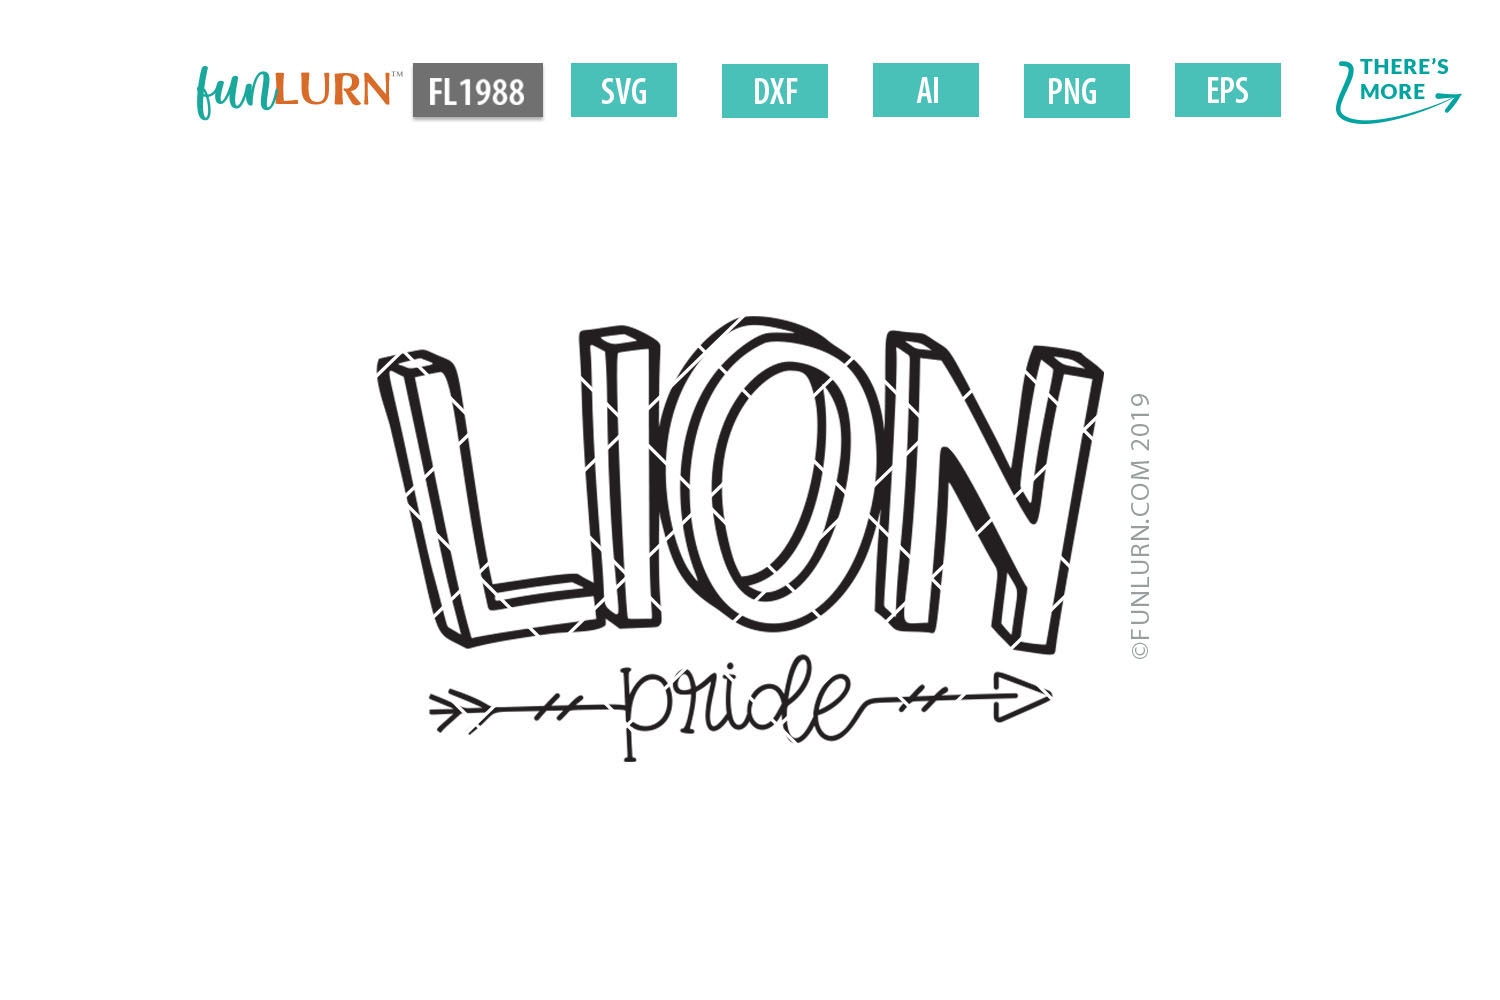 Lion Pride Team SVG Cut File example image 2